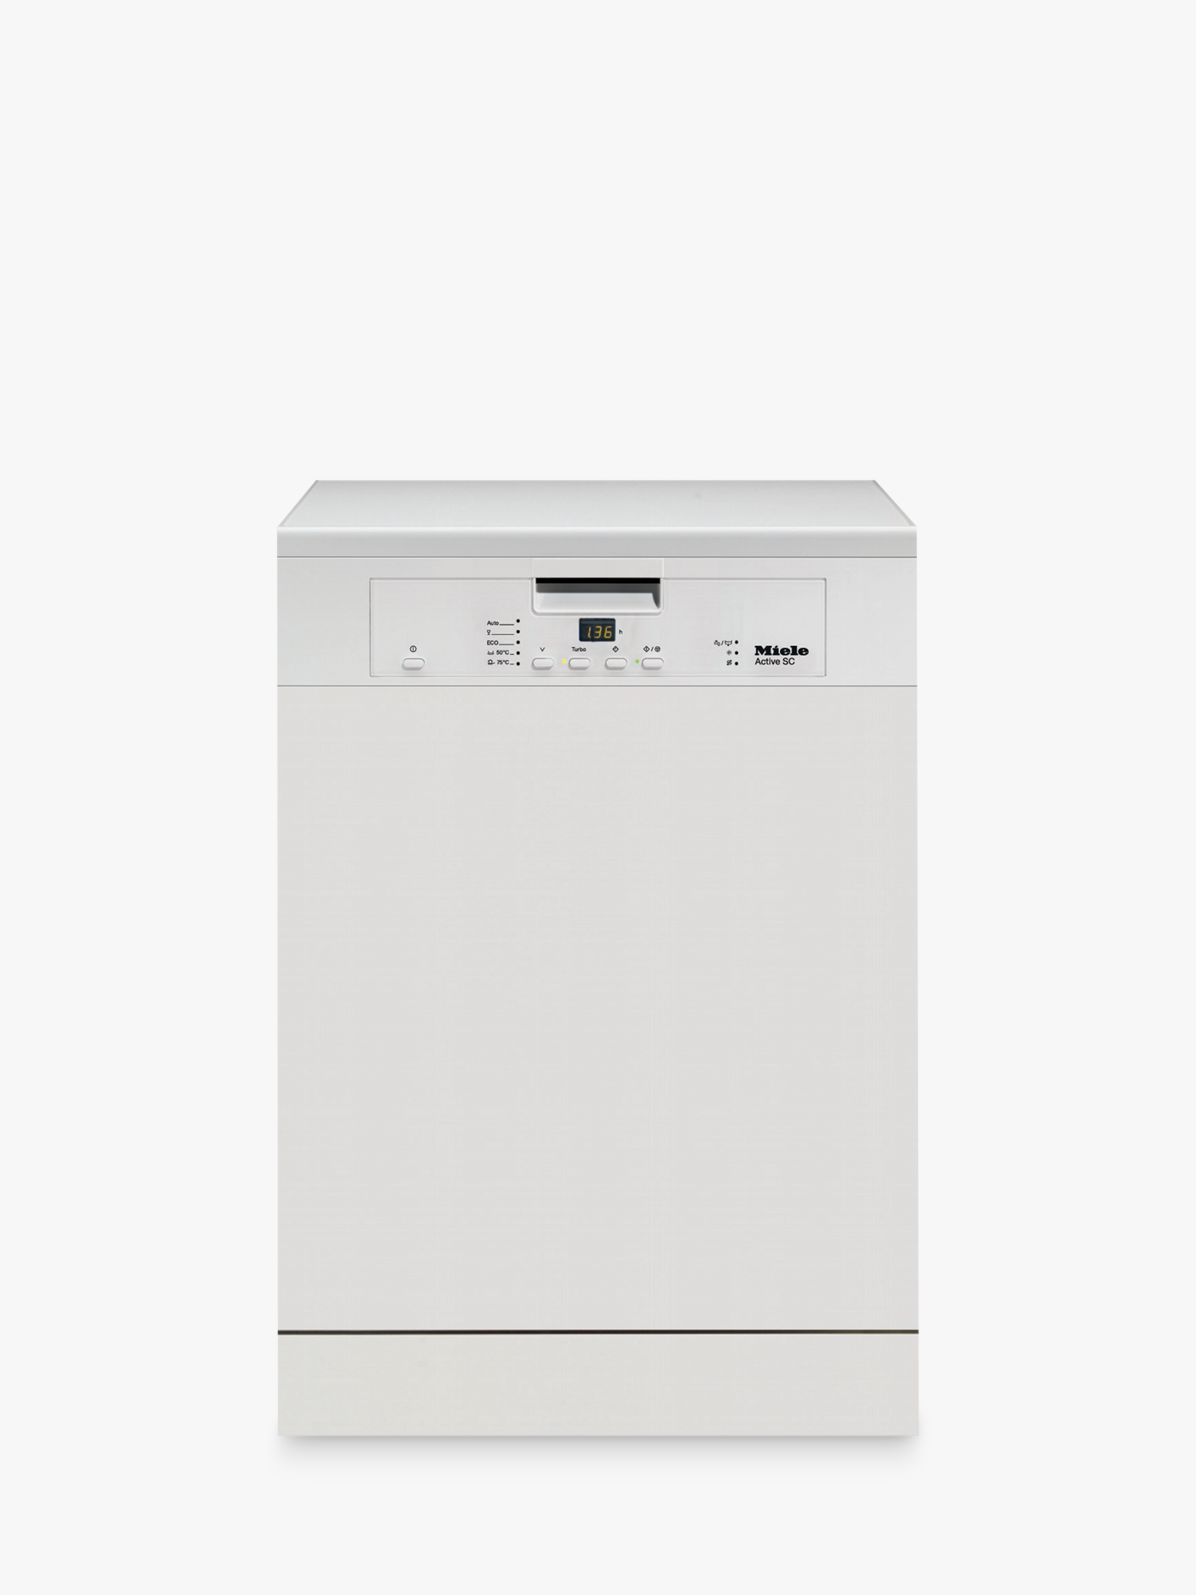 Miele Dishwasher Reviews >> Miele G4203sc Freestanding Dishwasher White